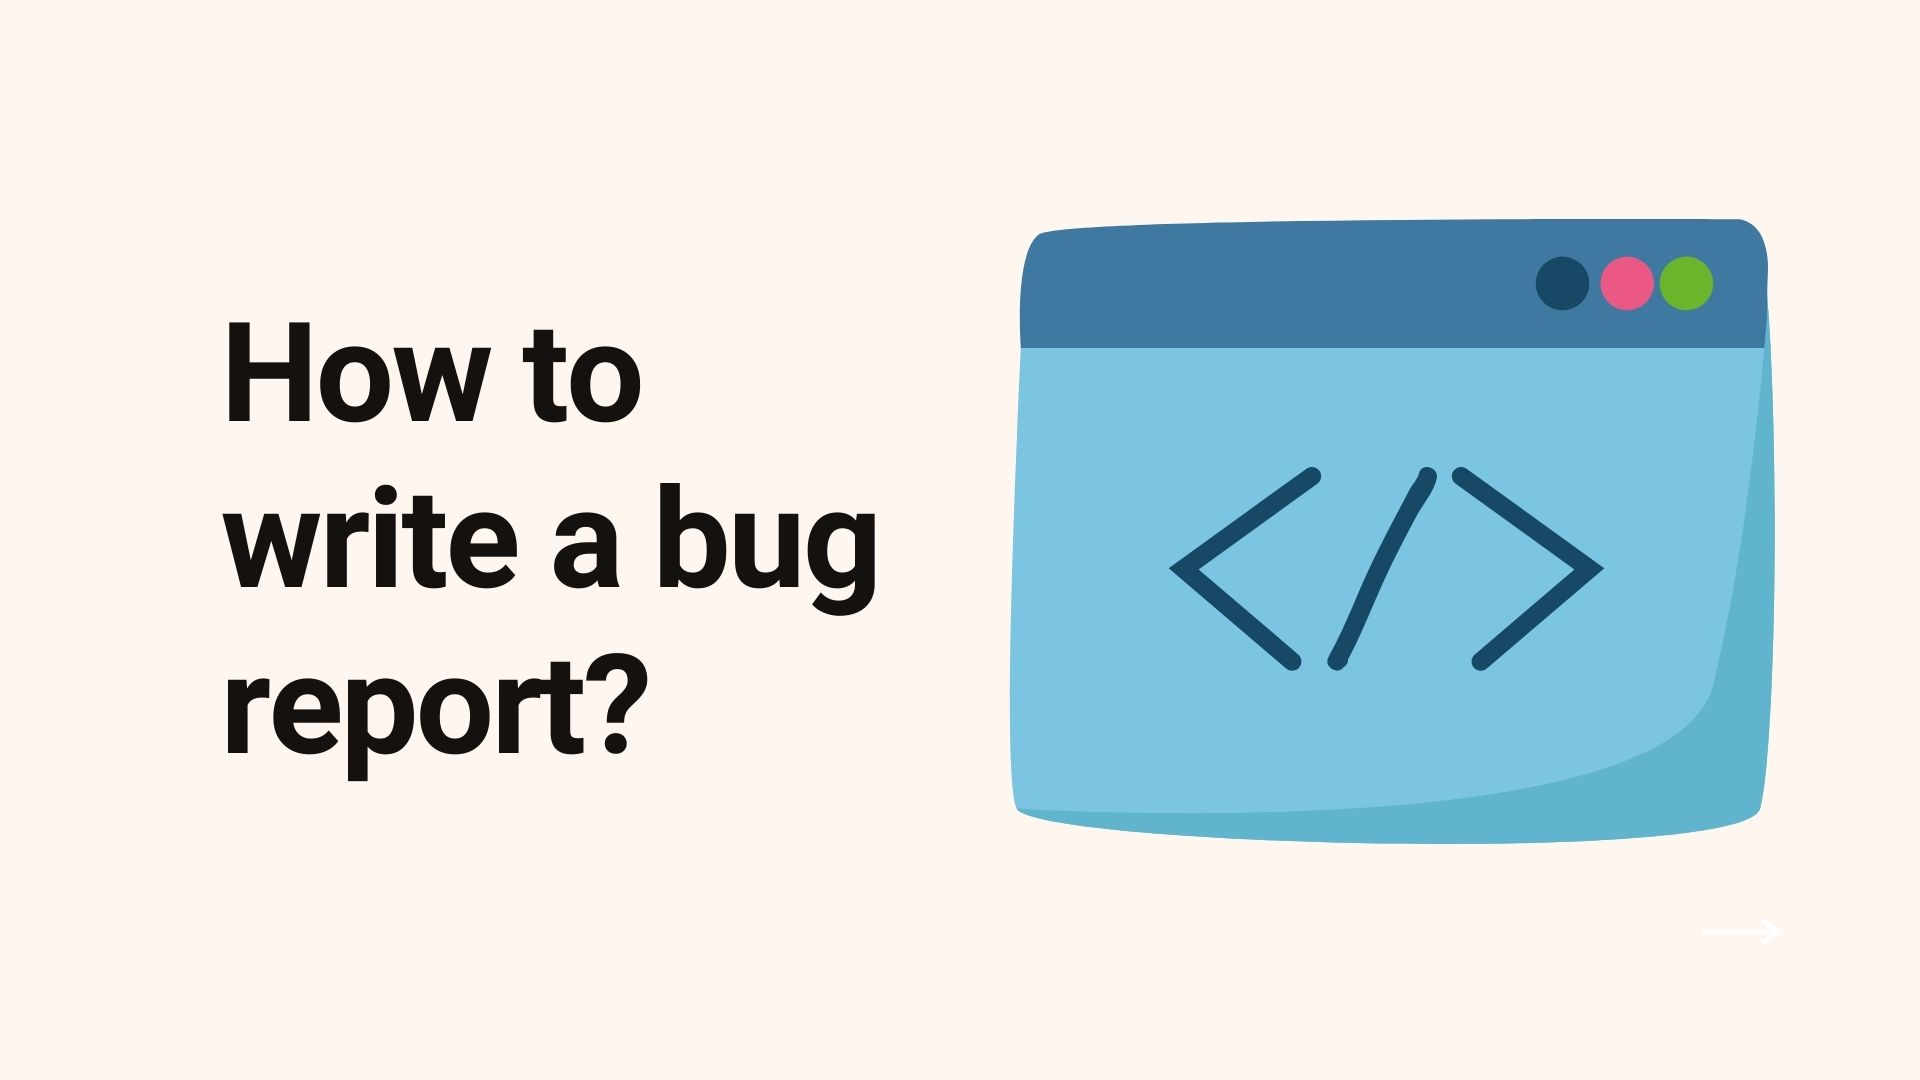 How to write a bug report?